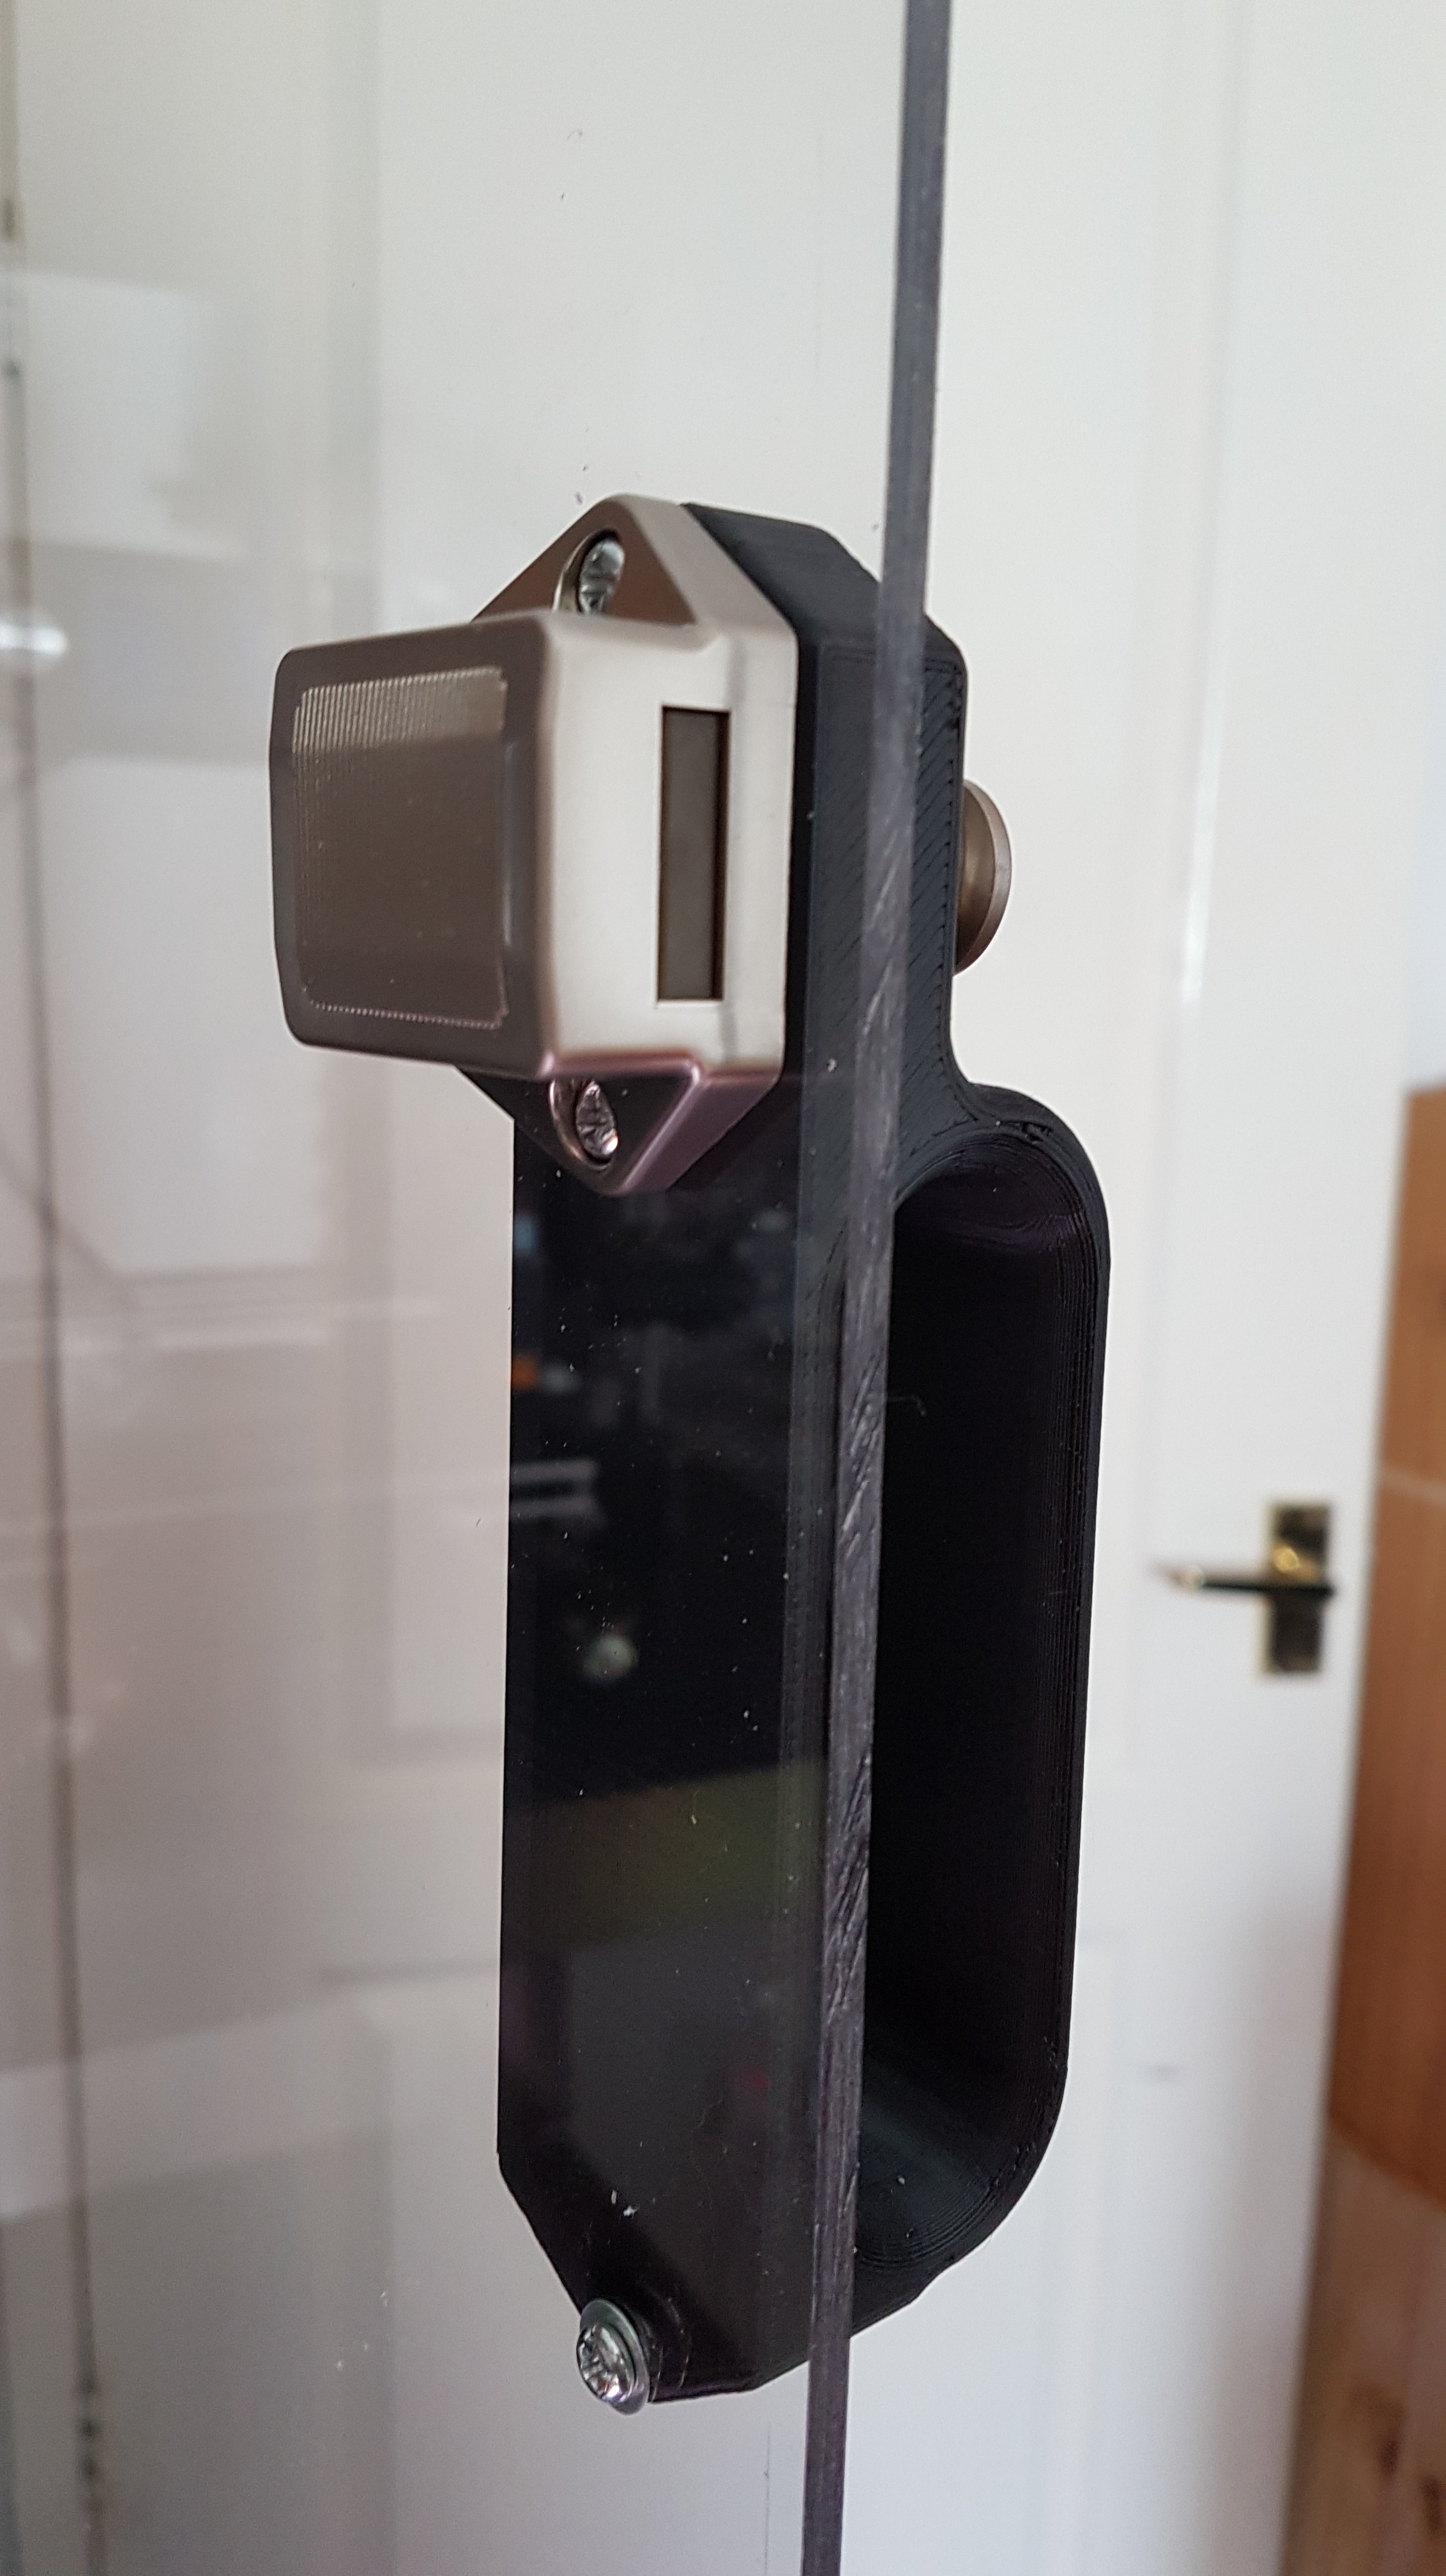 20180809_095115.jpg Download free STL file IKEA Lack Door handle and latch mount • 3D printer template, gnattycole